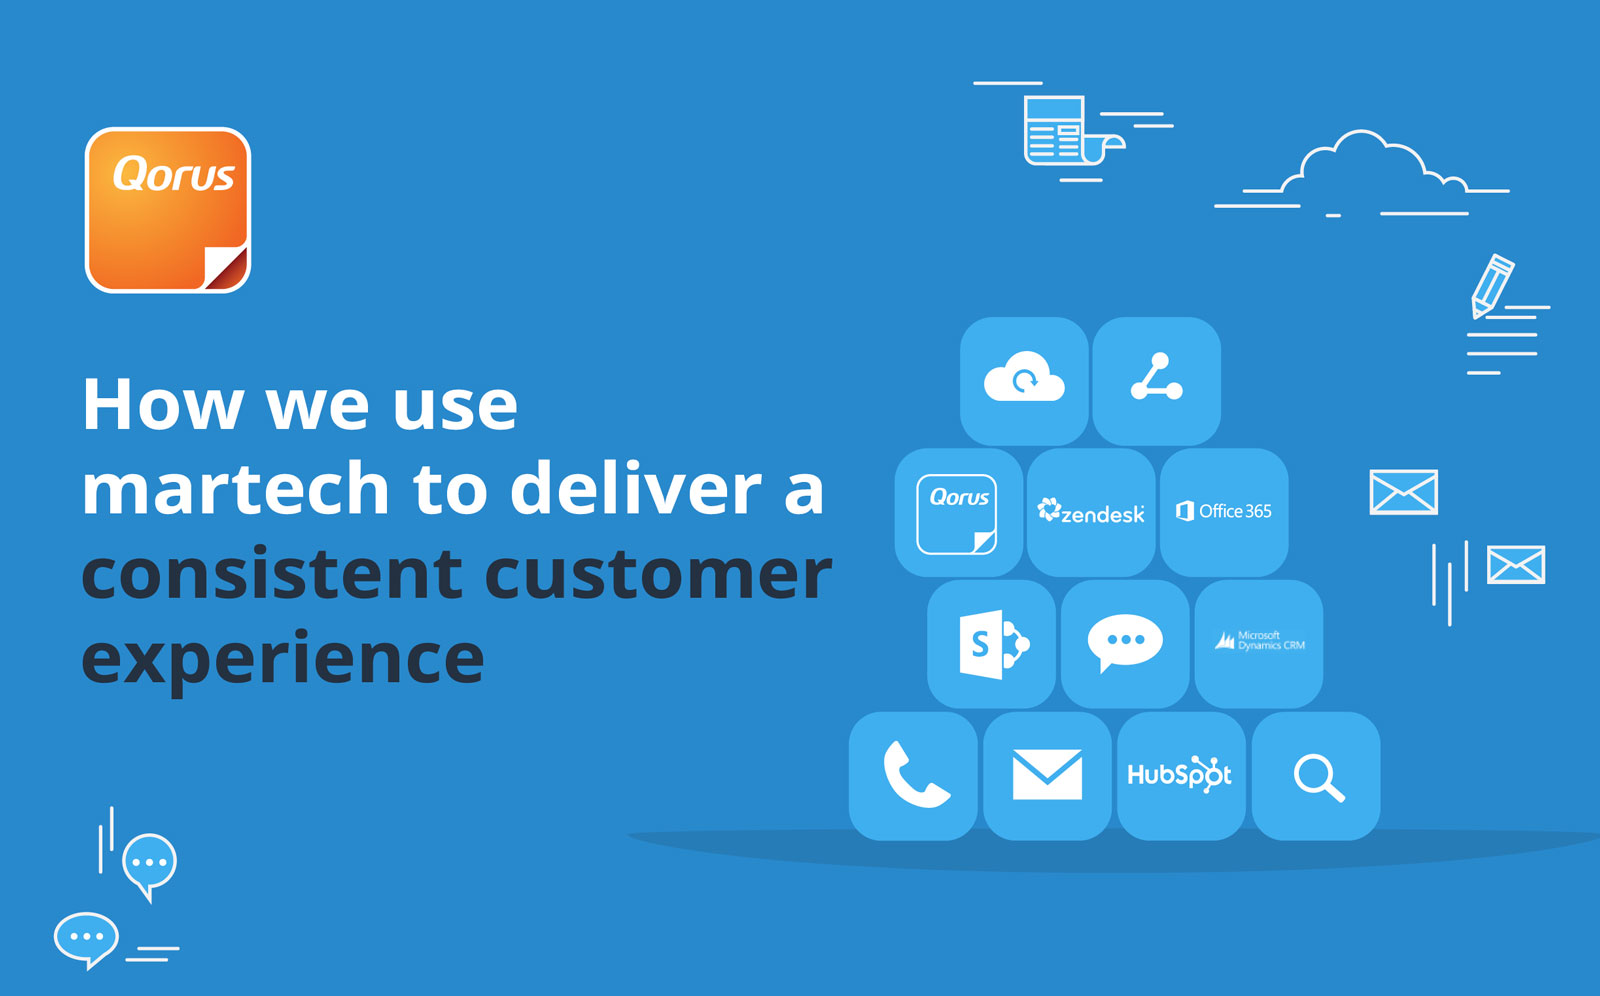 How Qorus uses Martech to deliver a consistent customer experience cover